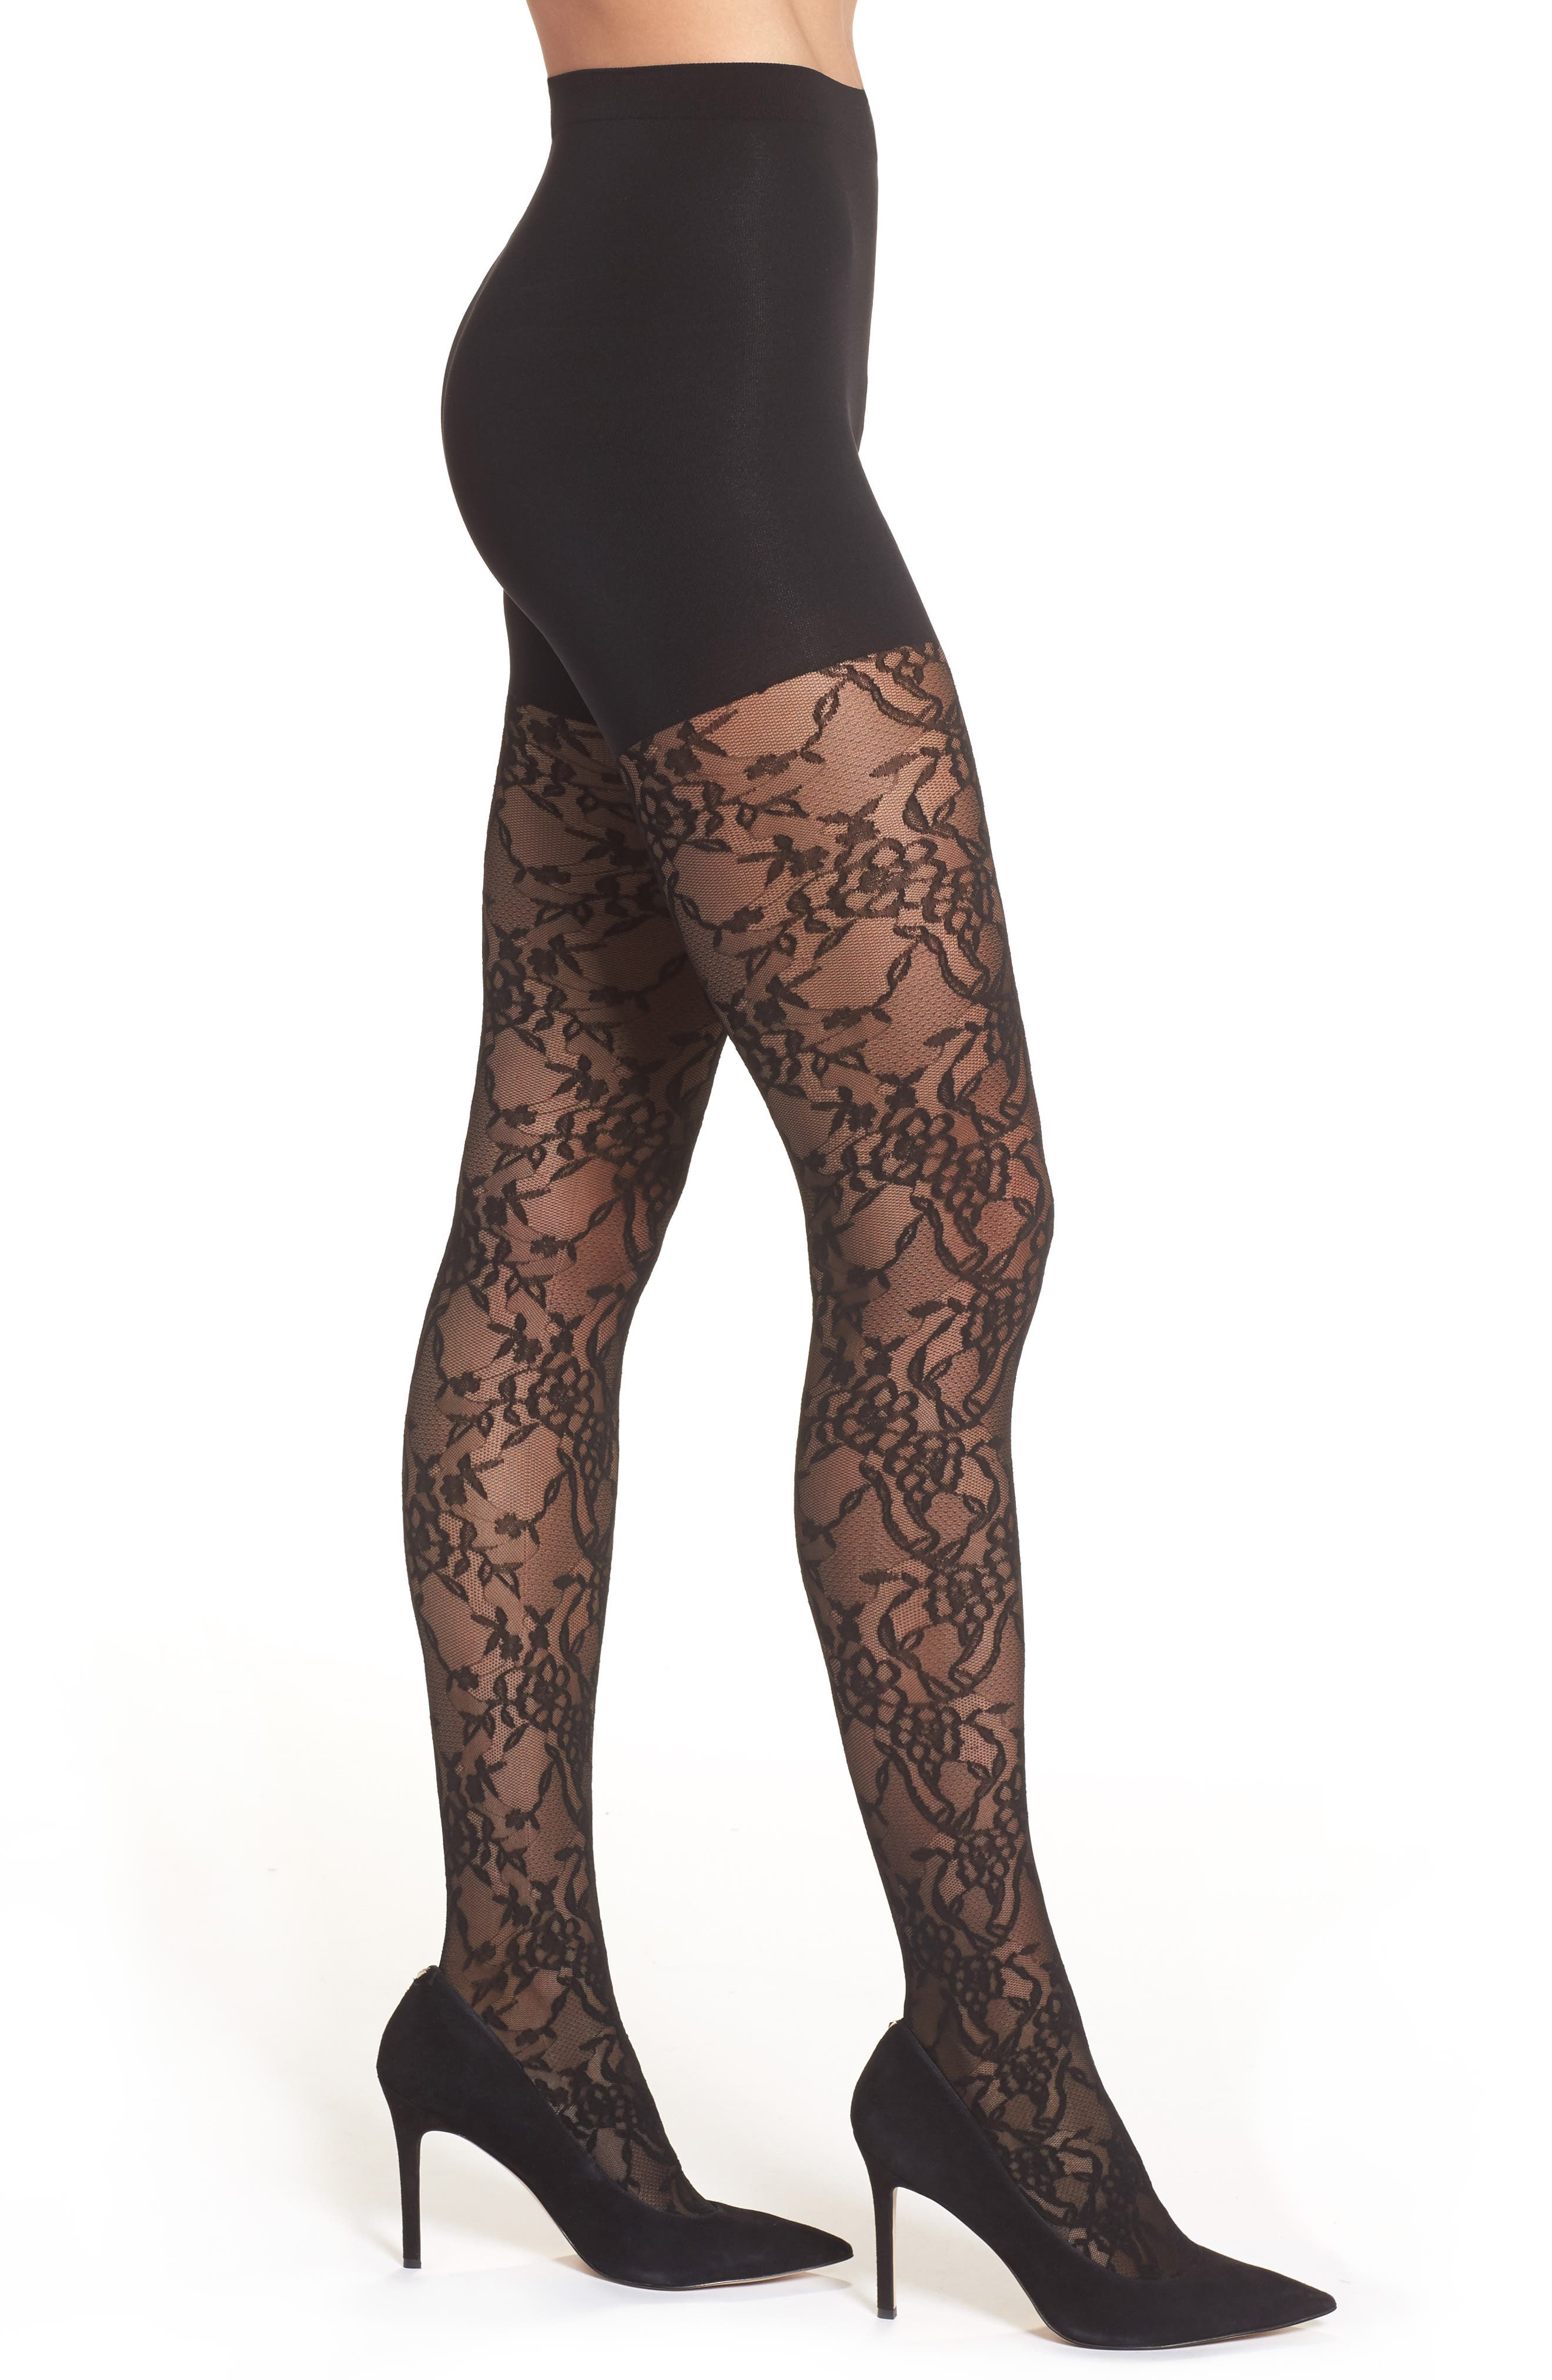 Alternate Image 1 Selected - SPANX® Lovely Lace Shaper Tights